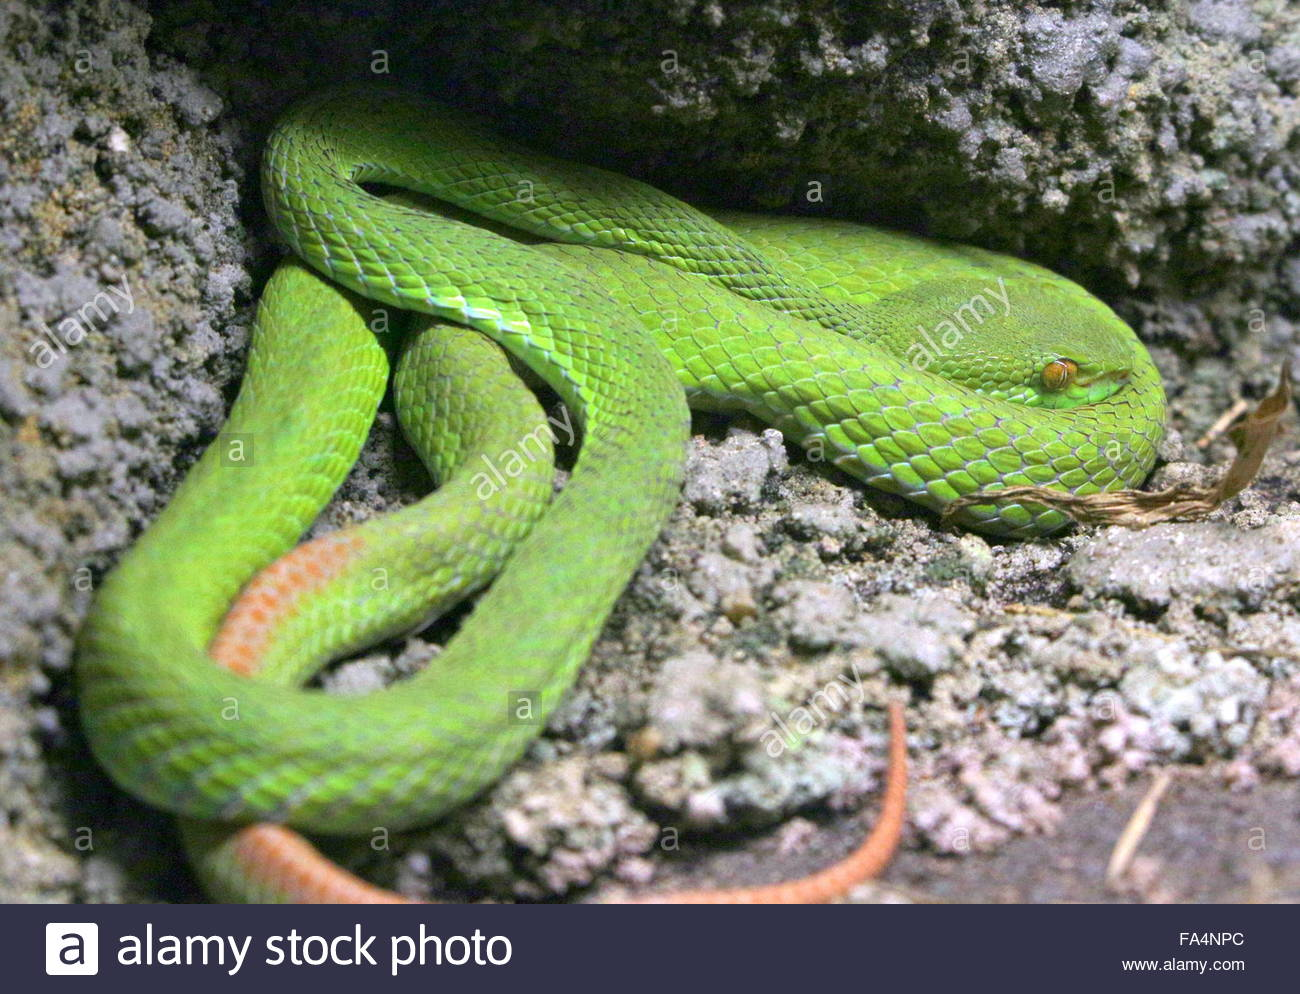 White-lipped Pit Viper svg #11, Download drawings